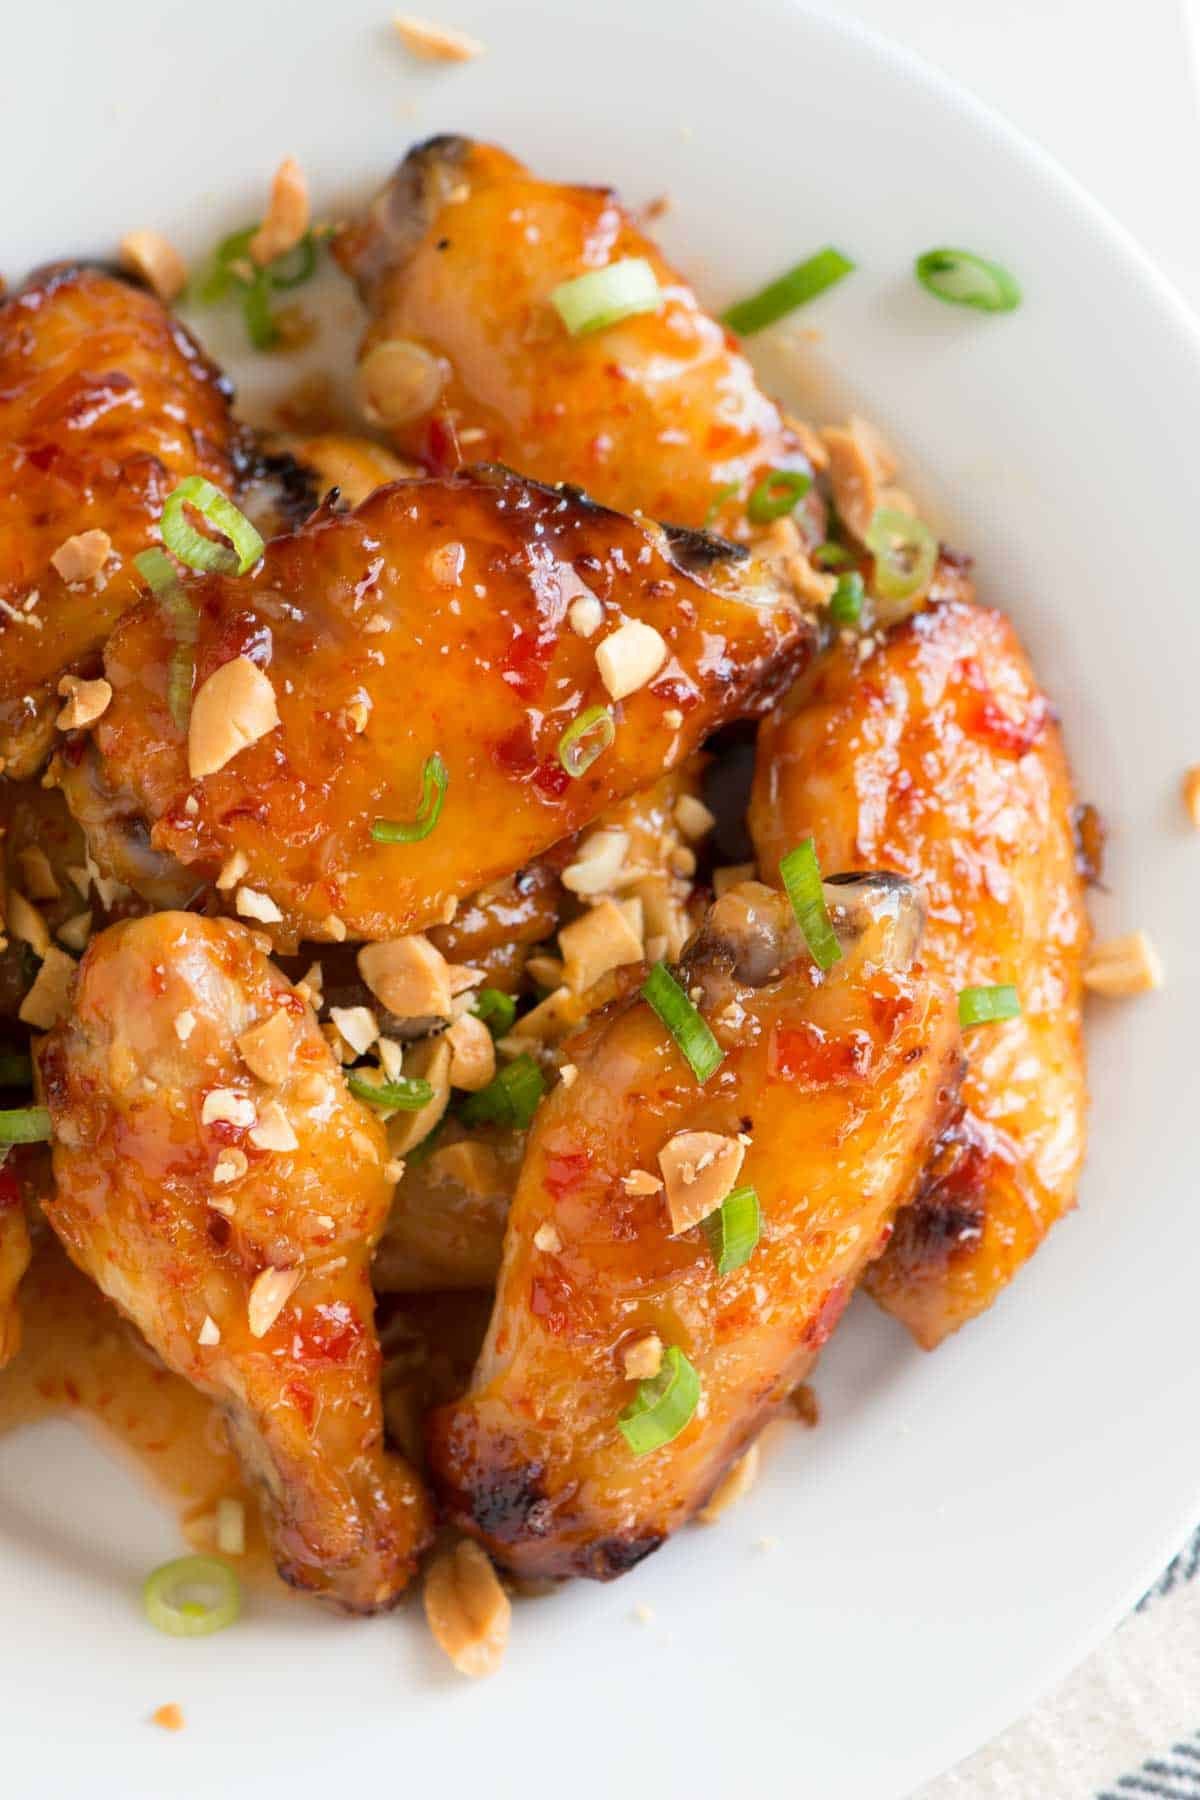 How To Make Chicken Wings  Sweet Chili Baked Chicken Wings Recipe